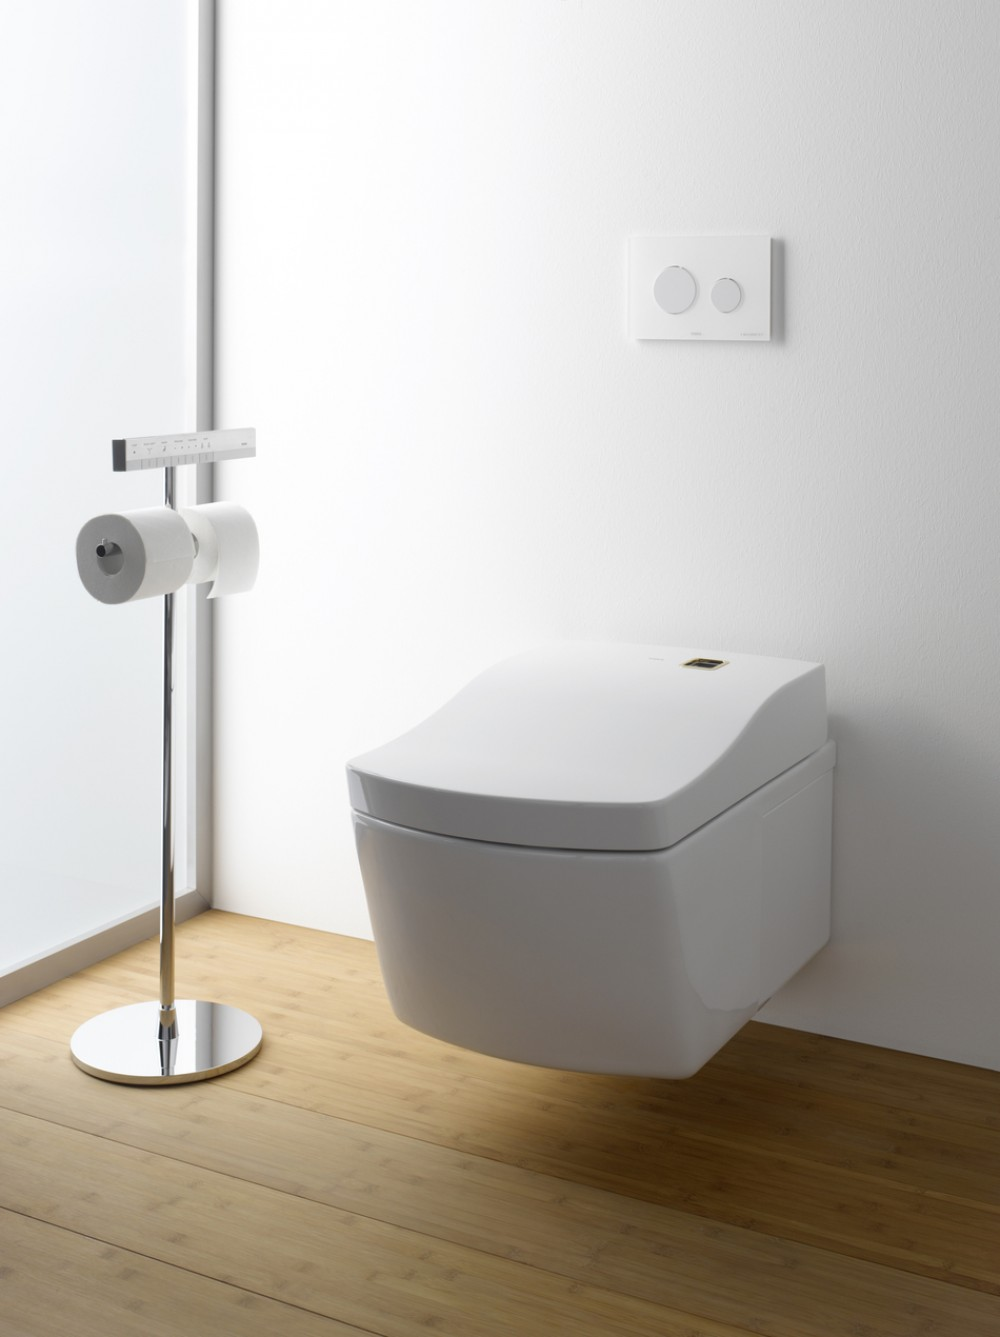 NEOREST Series NEOREST AC, WASHLET